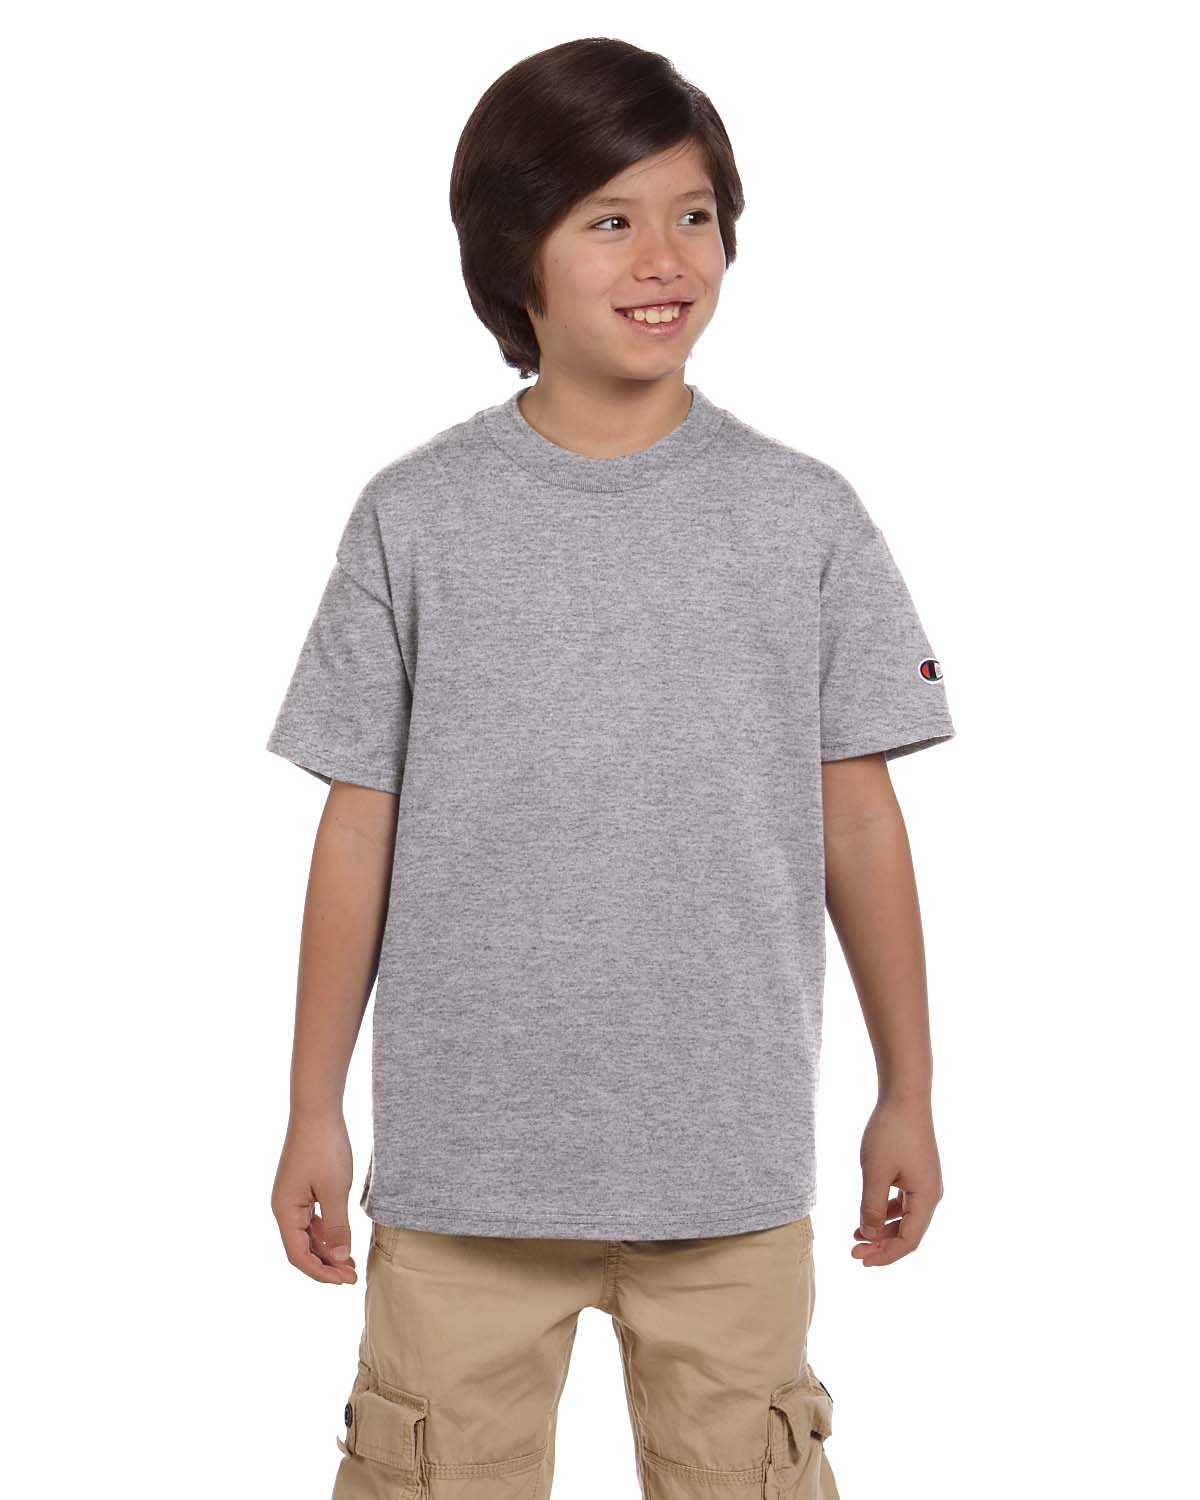 87c8e1c4 Kids>Champion T435 Youth 6.1 oz. Short-Sleeve T-Shirt. T435_51 View larger.  Previous. T435_51 · T435_46 · T435_54 · T435_00